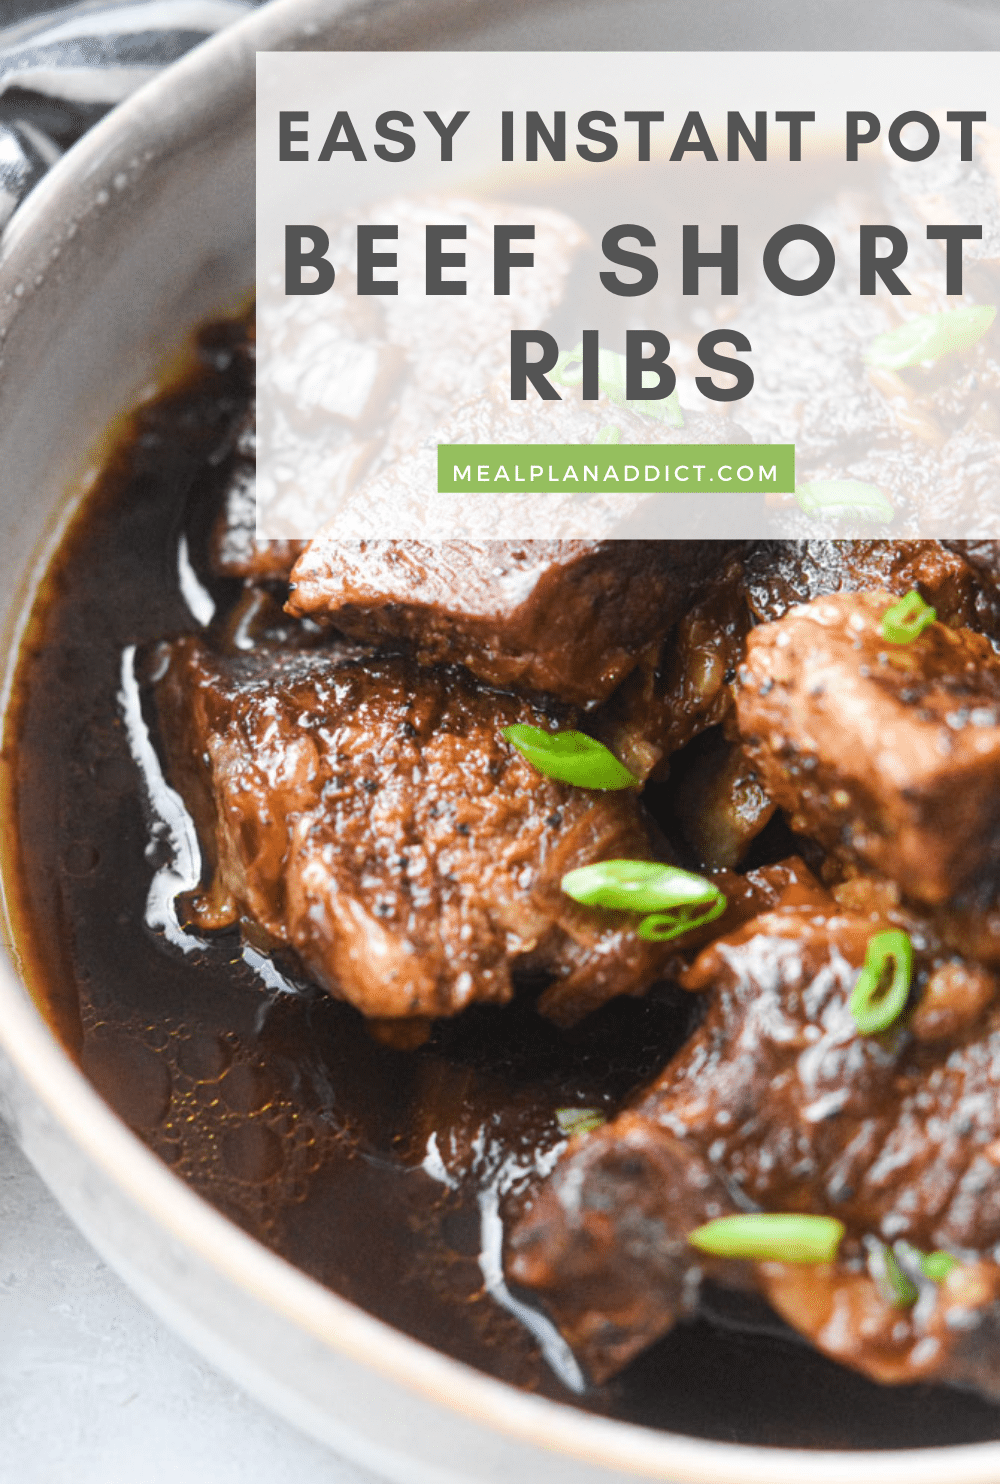 Beef short ribs pin for Pinterest